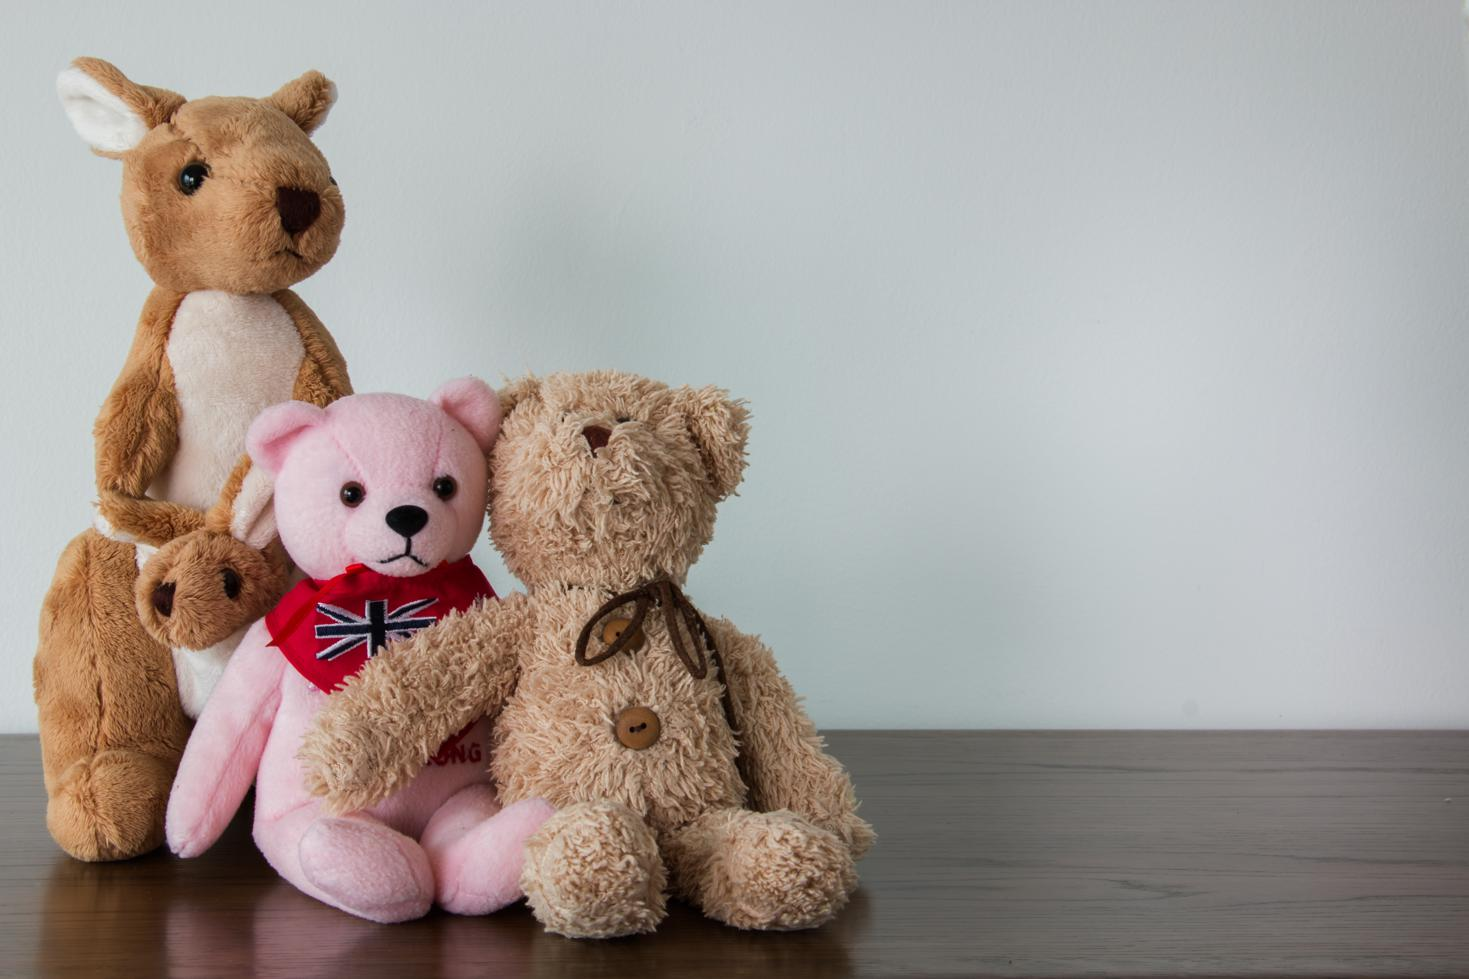 stuffed animals that used to be valuable stored at Affordable Family Storage